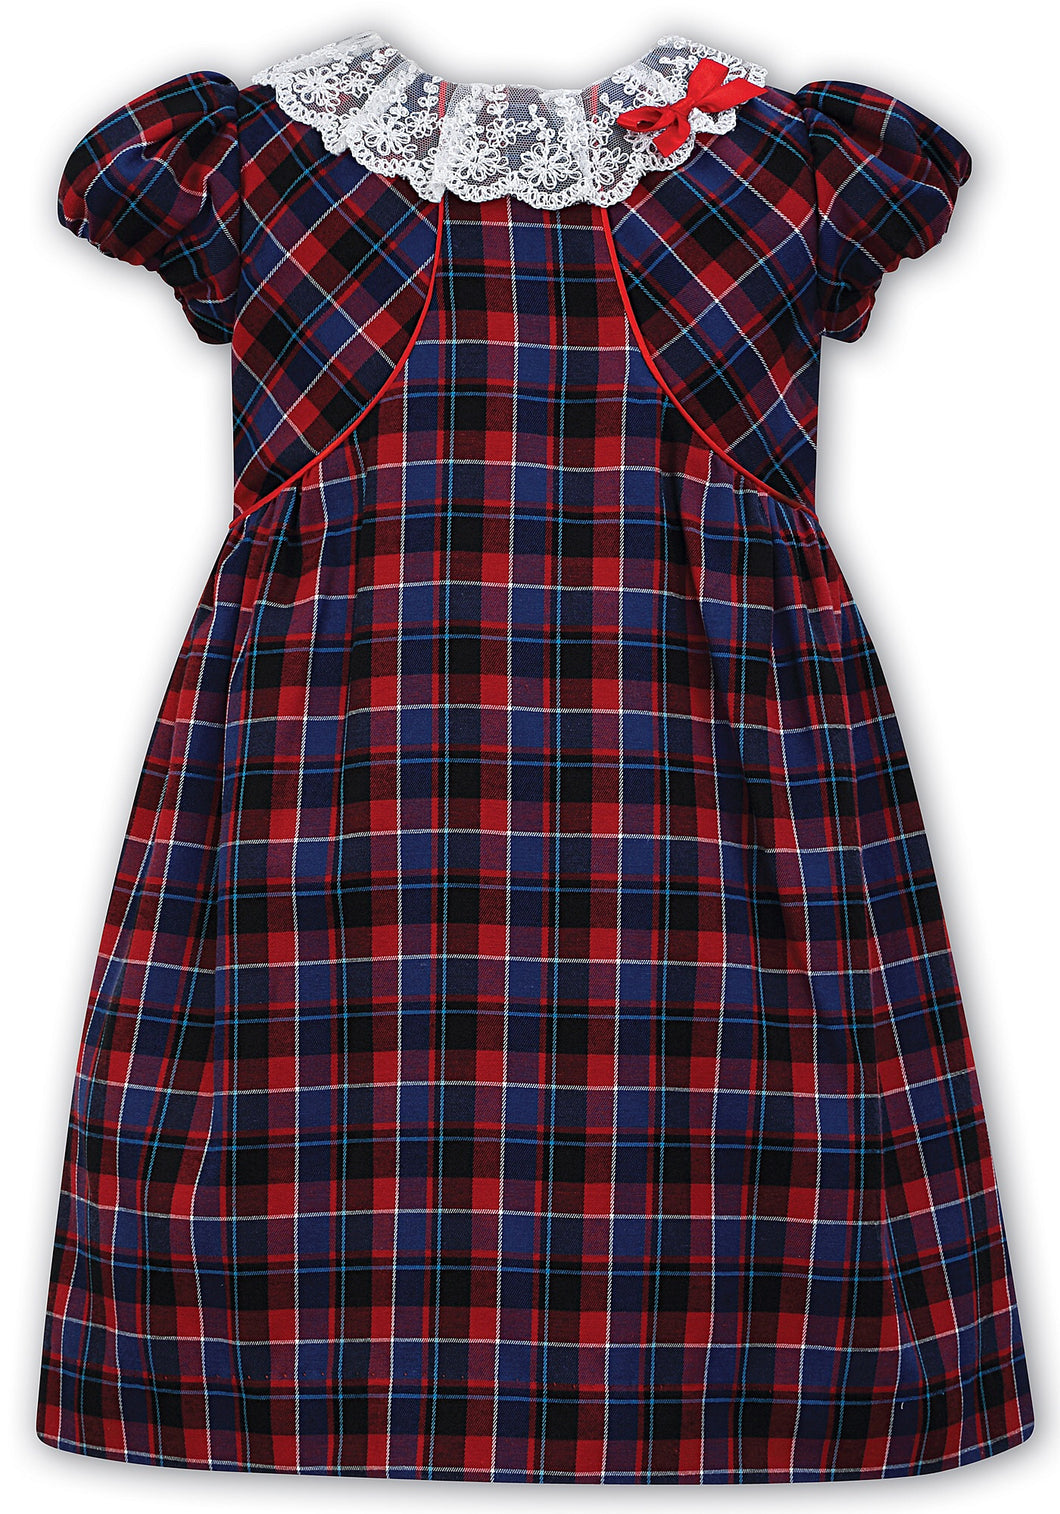 Girls Short Sleeved Tartan Dress with Piping Detailing a Bolaro Top, Delicate Lace with Velvet Bow Trim on Neckline